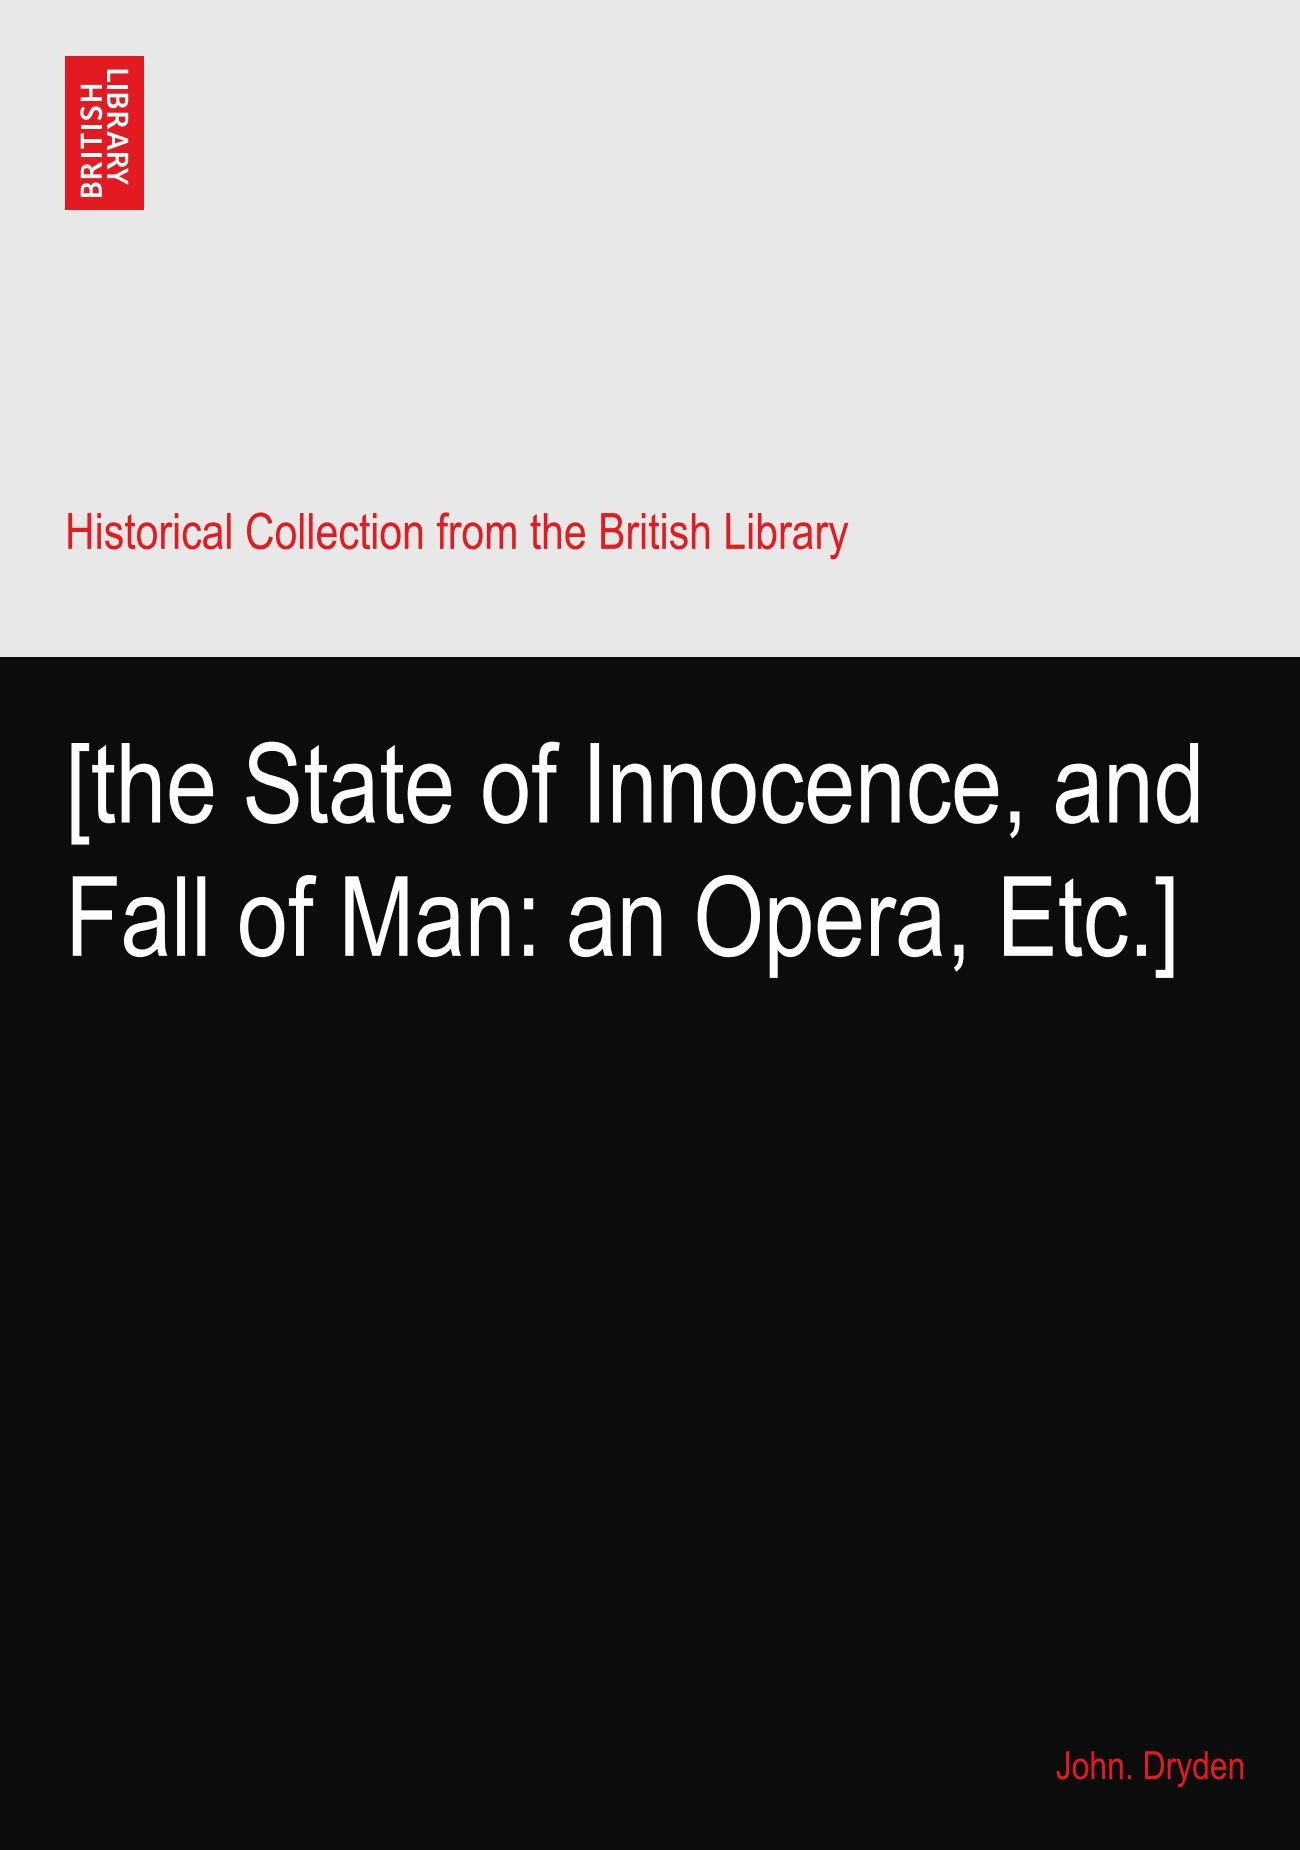 The State of Innocence: And Fall of Man. An Opera